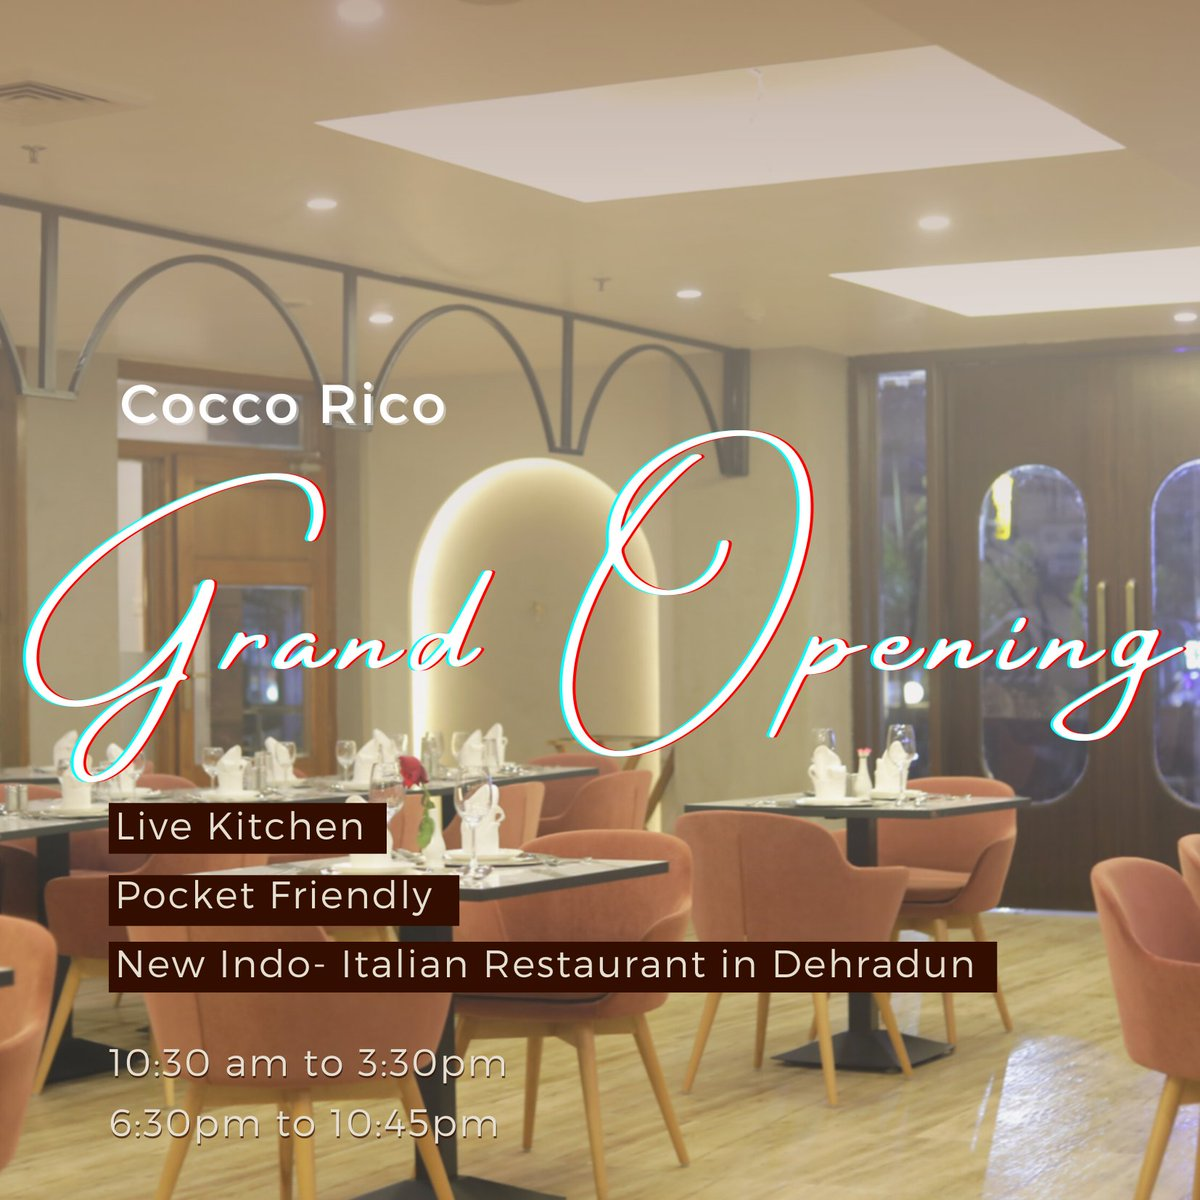 JSR Group of Hotel welcome you to the Grand Opening of our new Restaurant Cocco Rico at Hotel JSR Continental near Rispana Bridge. The highlight of our new restaurant is the live kitchen and the Indian and Italian Cuisine. #jsrgroup #coccorico #restaurantopening #trending #food